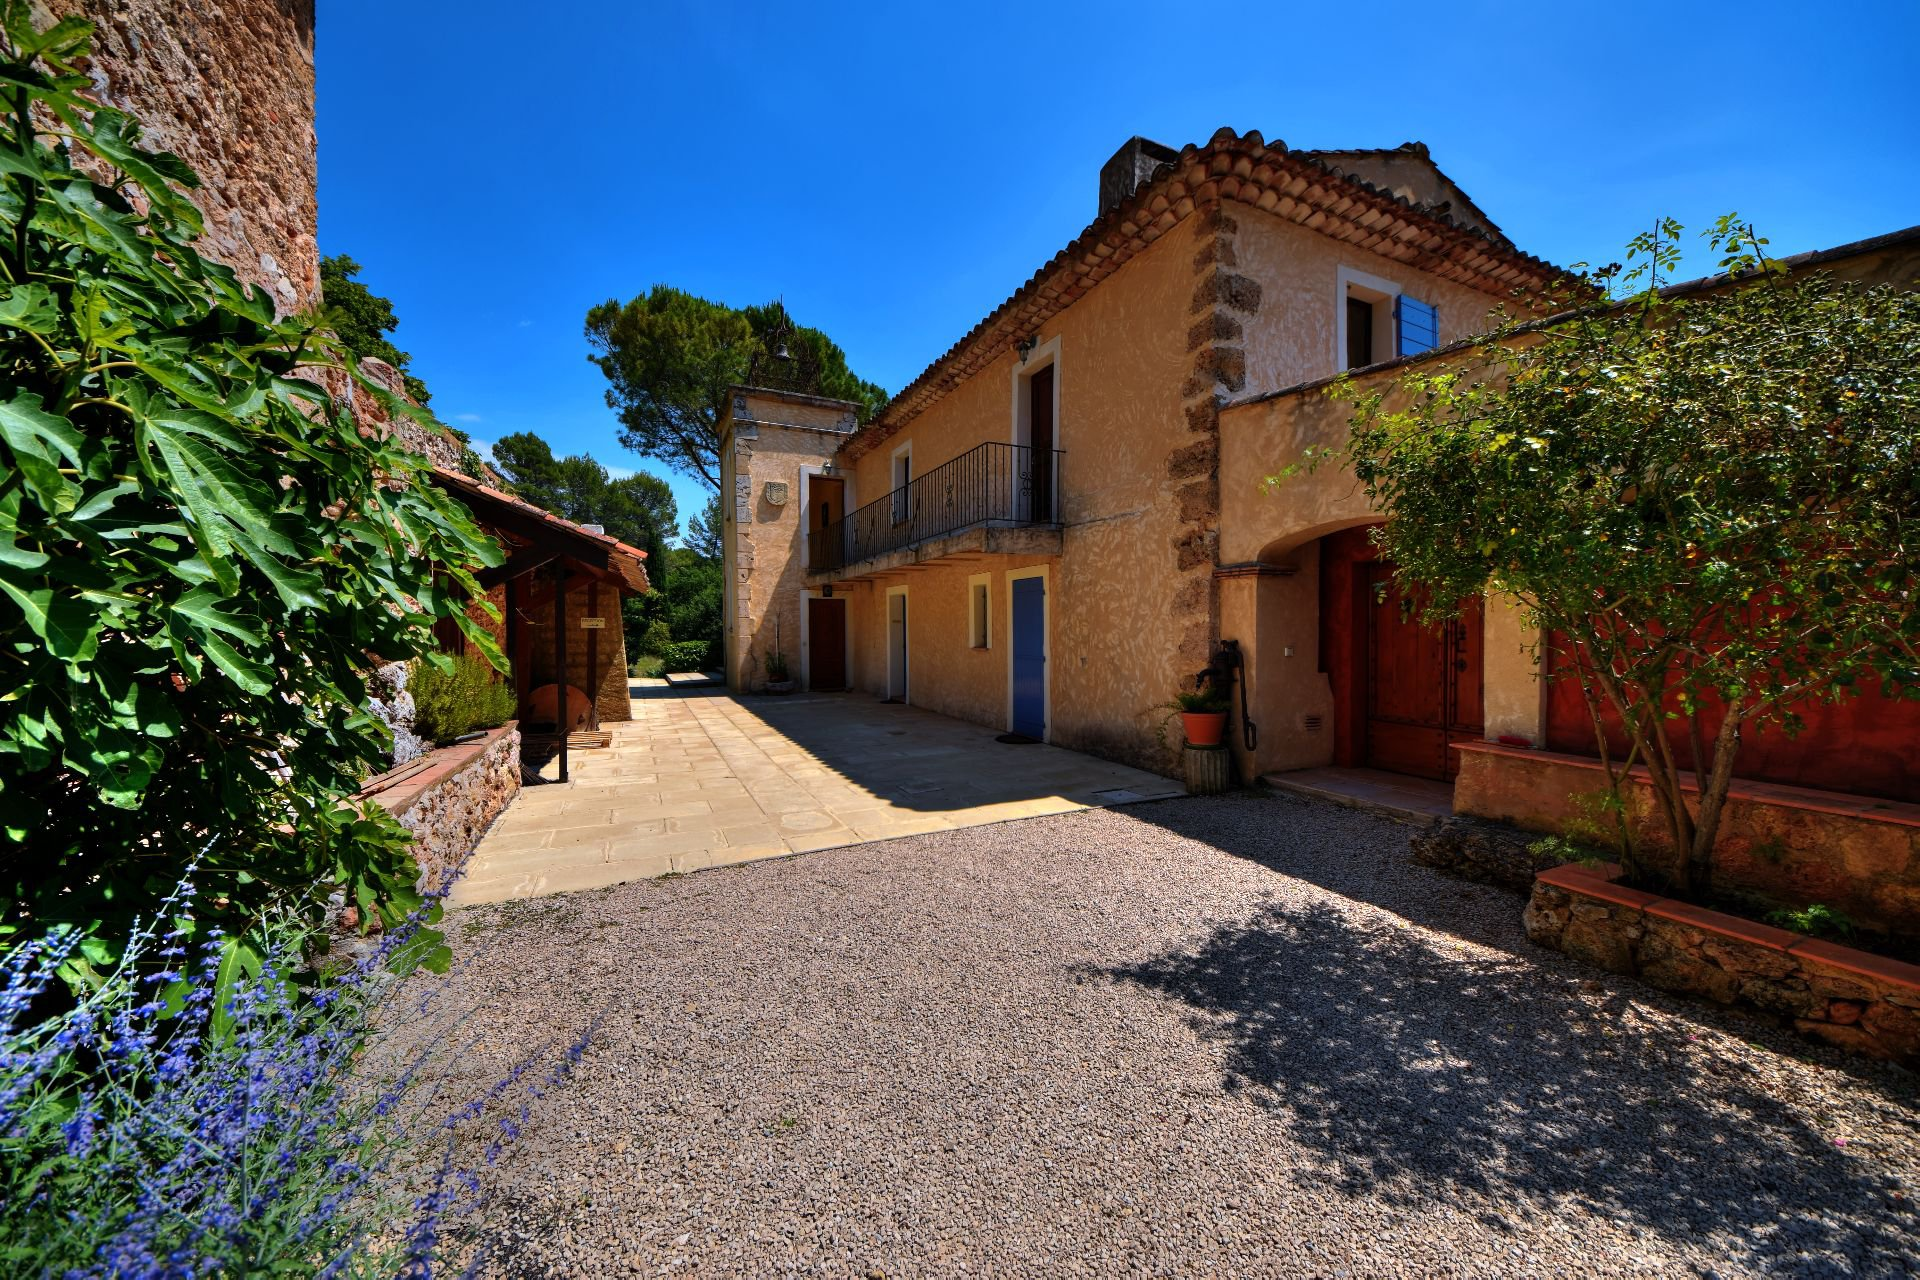 Stone Bastide 18th on 5 h 9, Salernes, Var, Provence